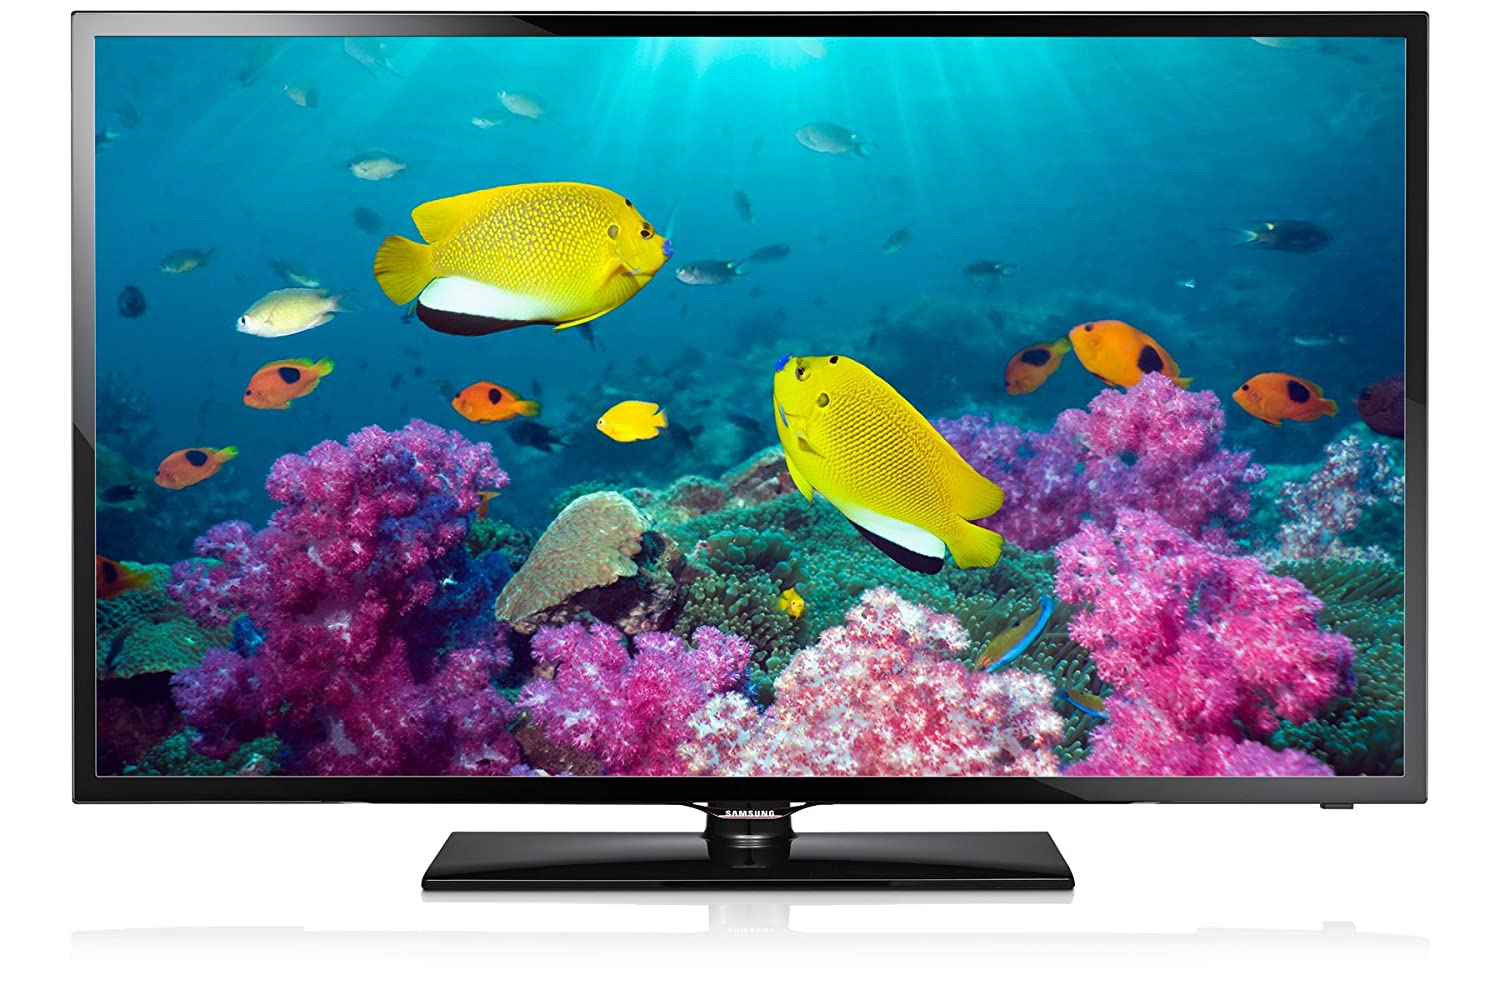 Samsung UE32F5000 TV LED, Display 32 Pollici, EDGE LED, Full HD, Audio 10  W, Nero: Amazon.it: Elettronica